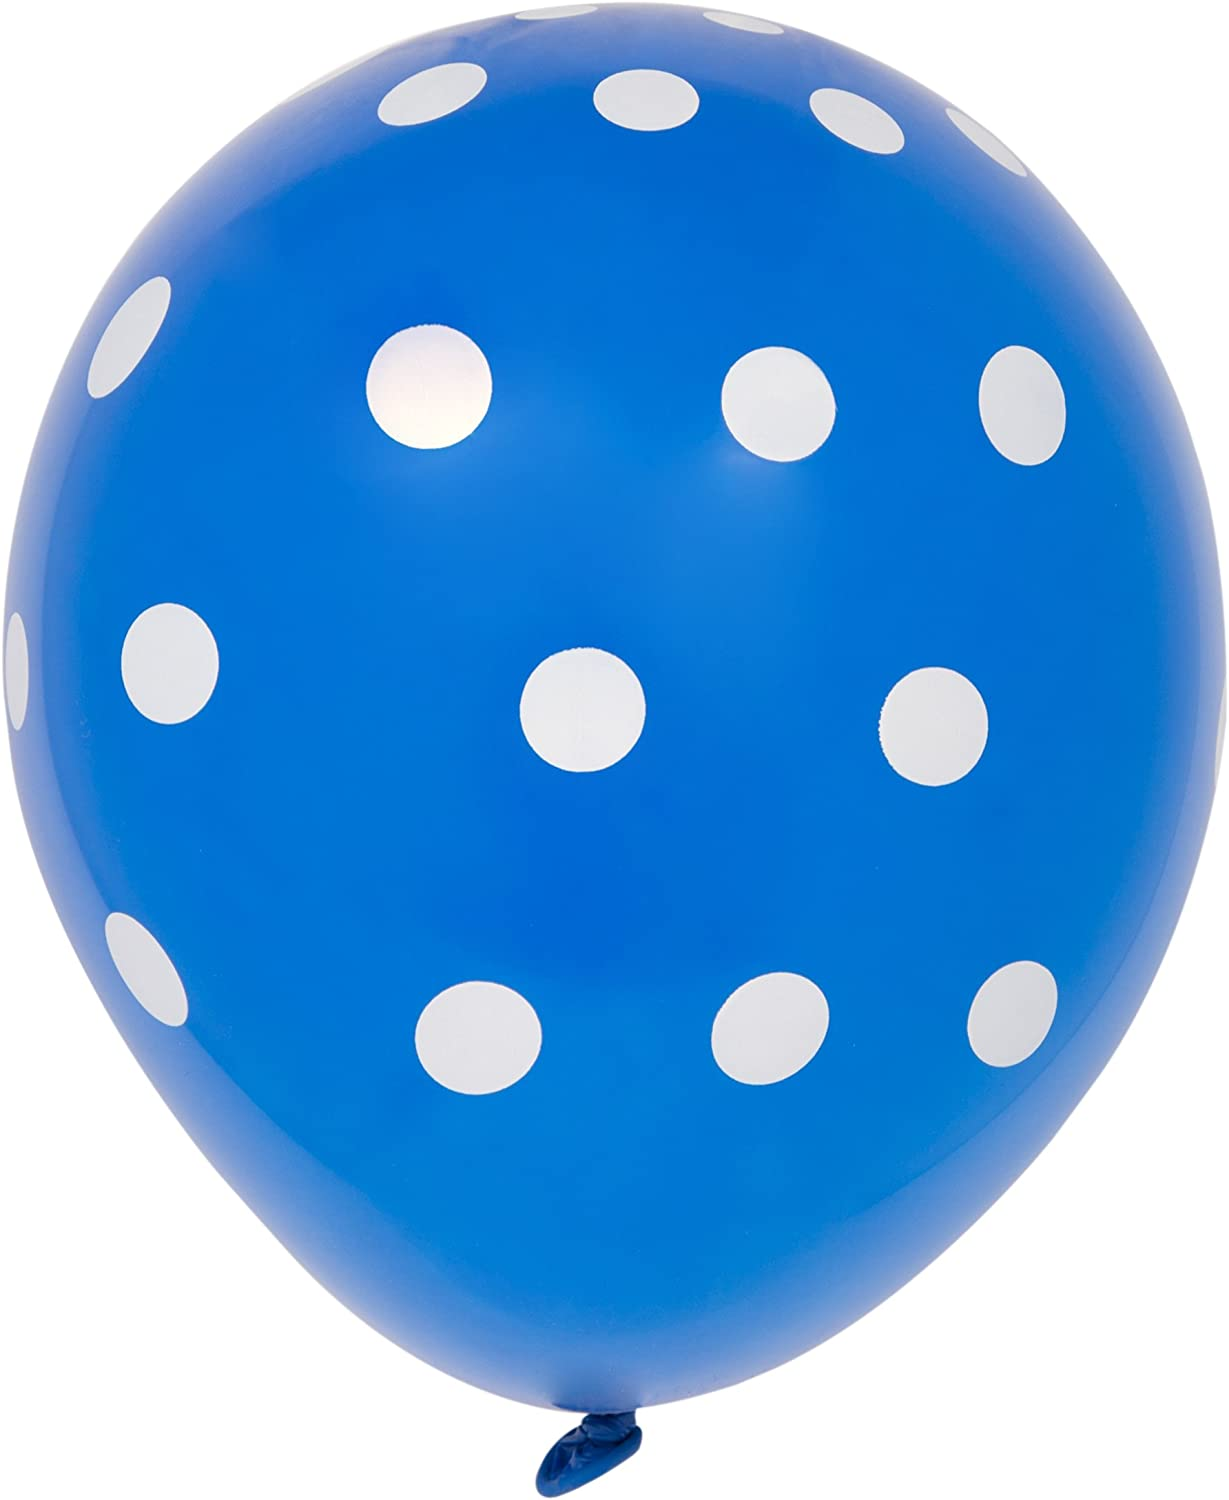 Wedding Room Decoration Other Occasion Polka Dot Balloons 100 Packs Latex Balloons 12 inch Colourful Spotty Balloons Easy to Inflatable Spot Balloons for Party Birthday Wedding Holiday Celebration